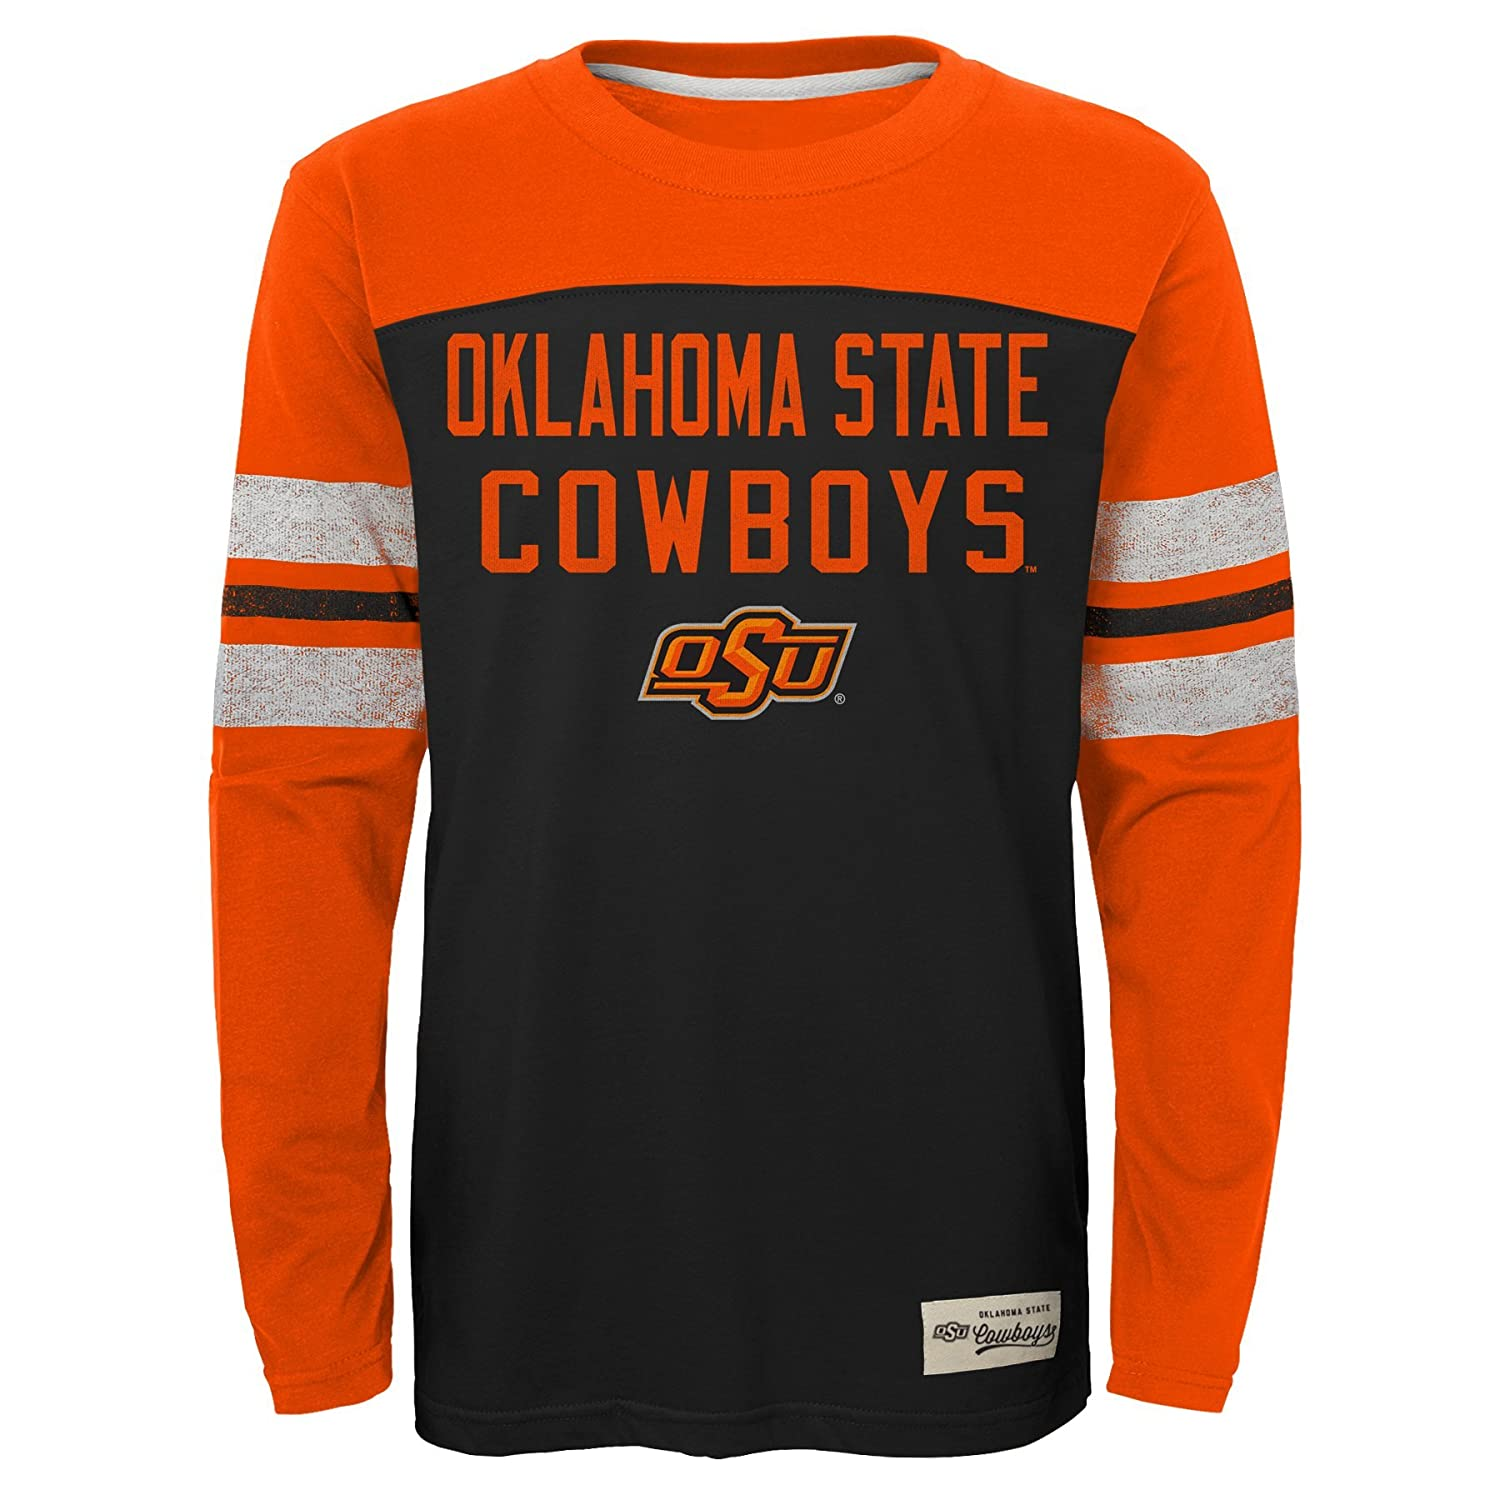 NCAA by Outerstuff NCAA Oklahoma State Cowboys Kids /& Youth Boys Legacy Tee Long Sleeve Crew Black Youth Large 14-16